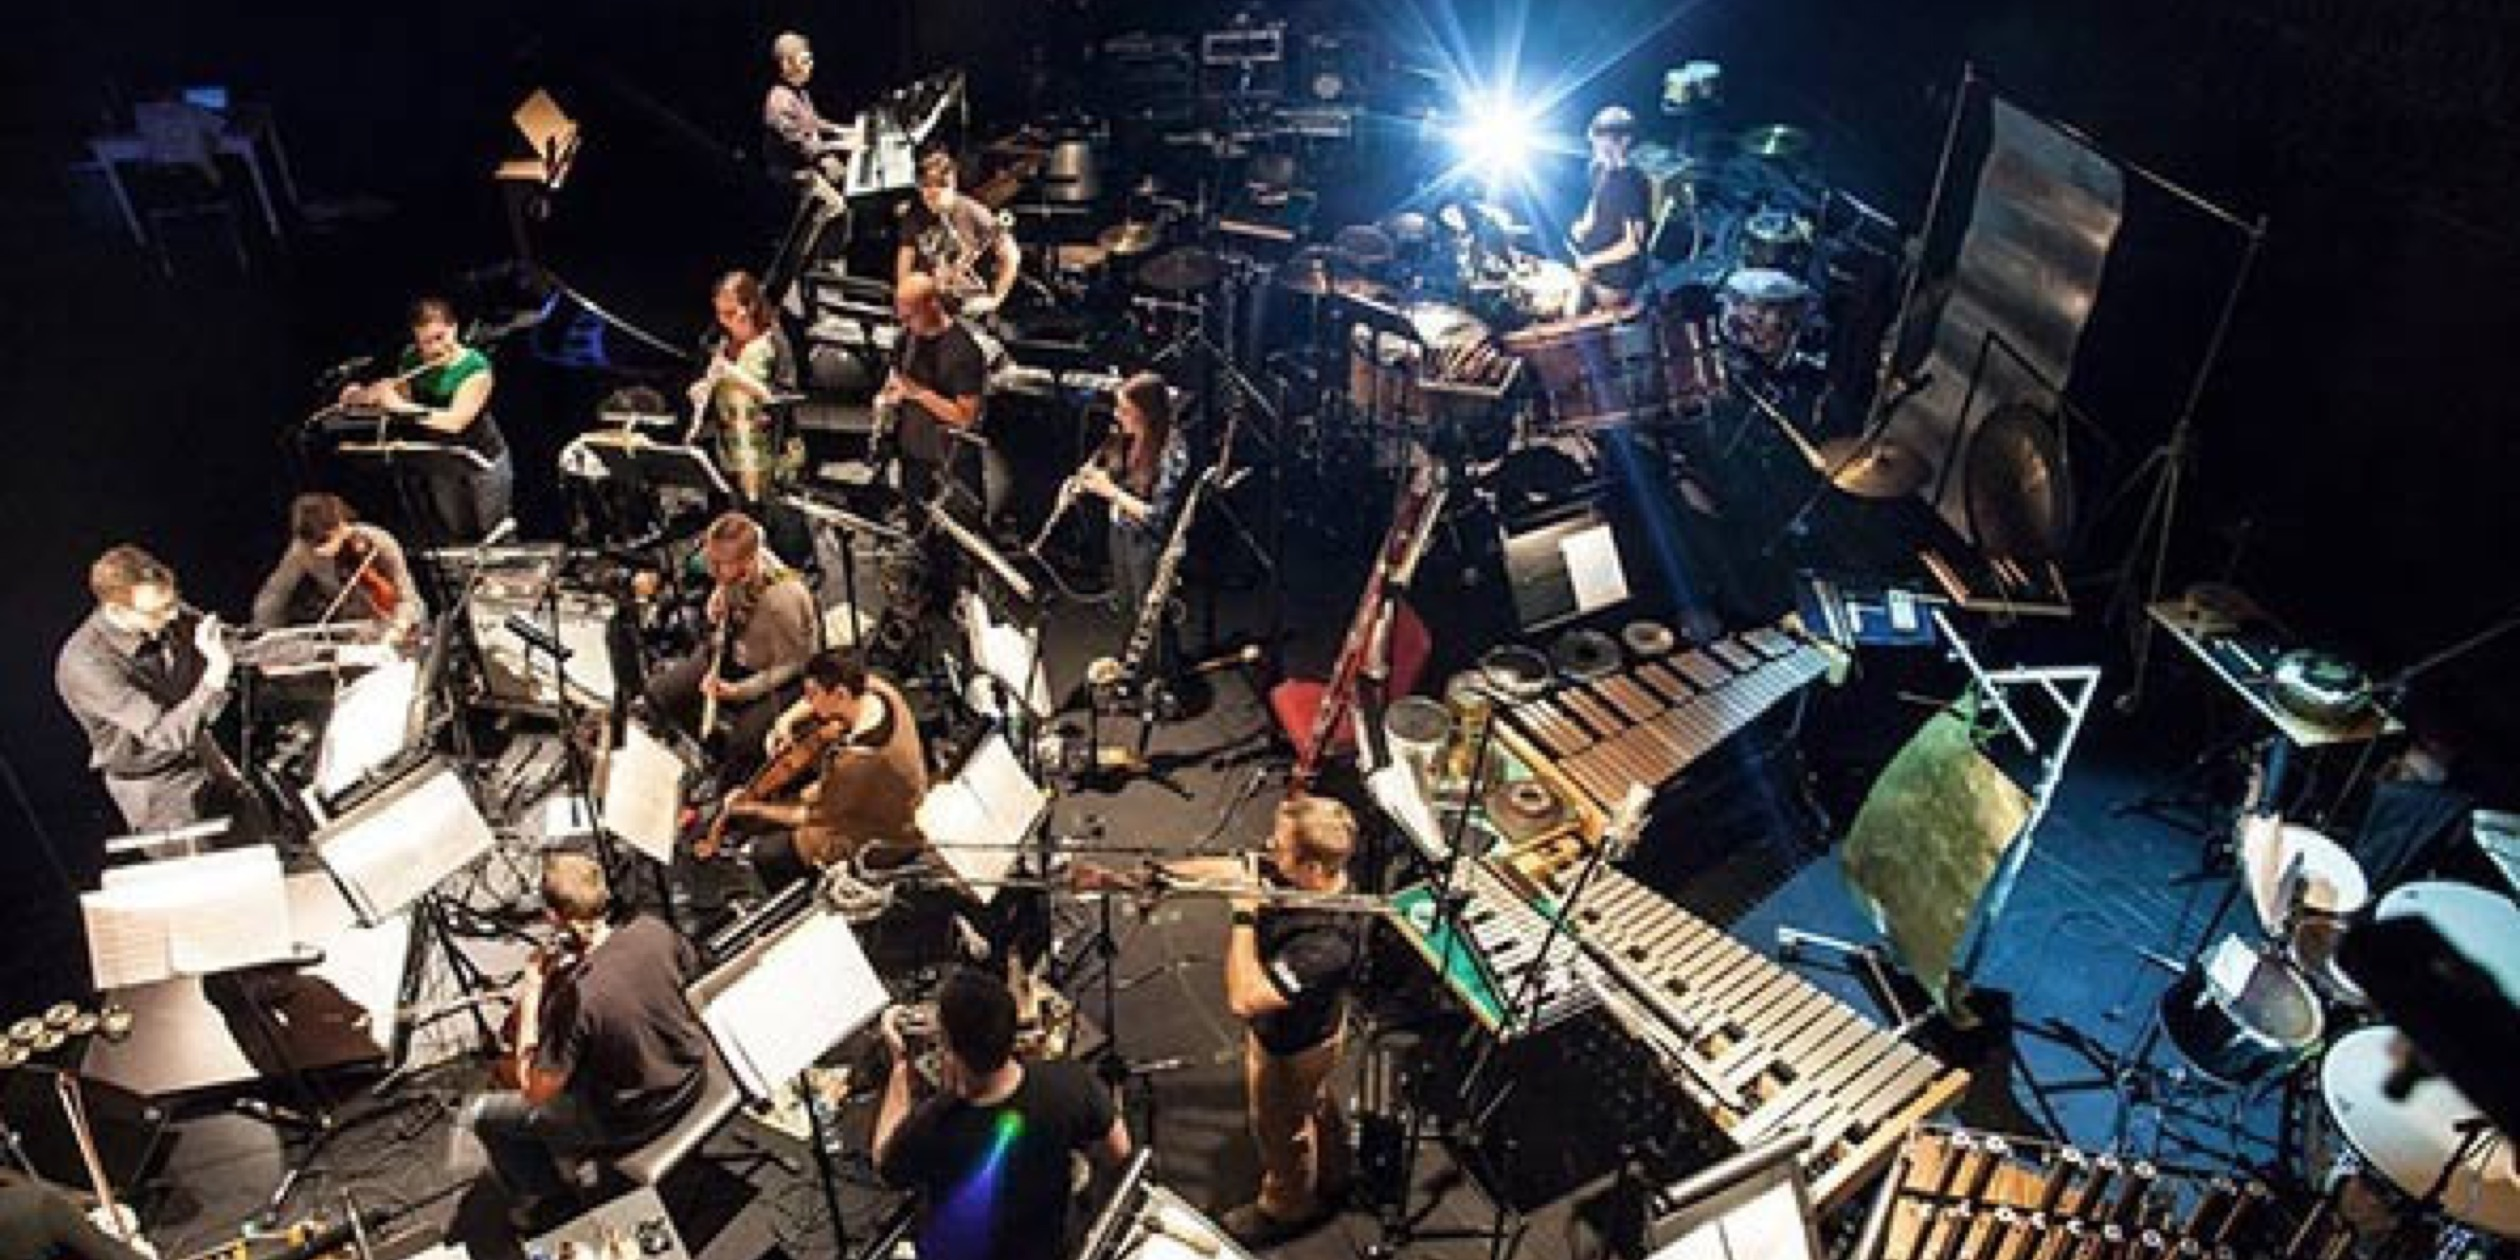 Ecstatic Music Festival: Alarm Will Sound | Sat, May 13, 8:30 pm